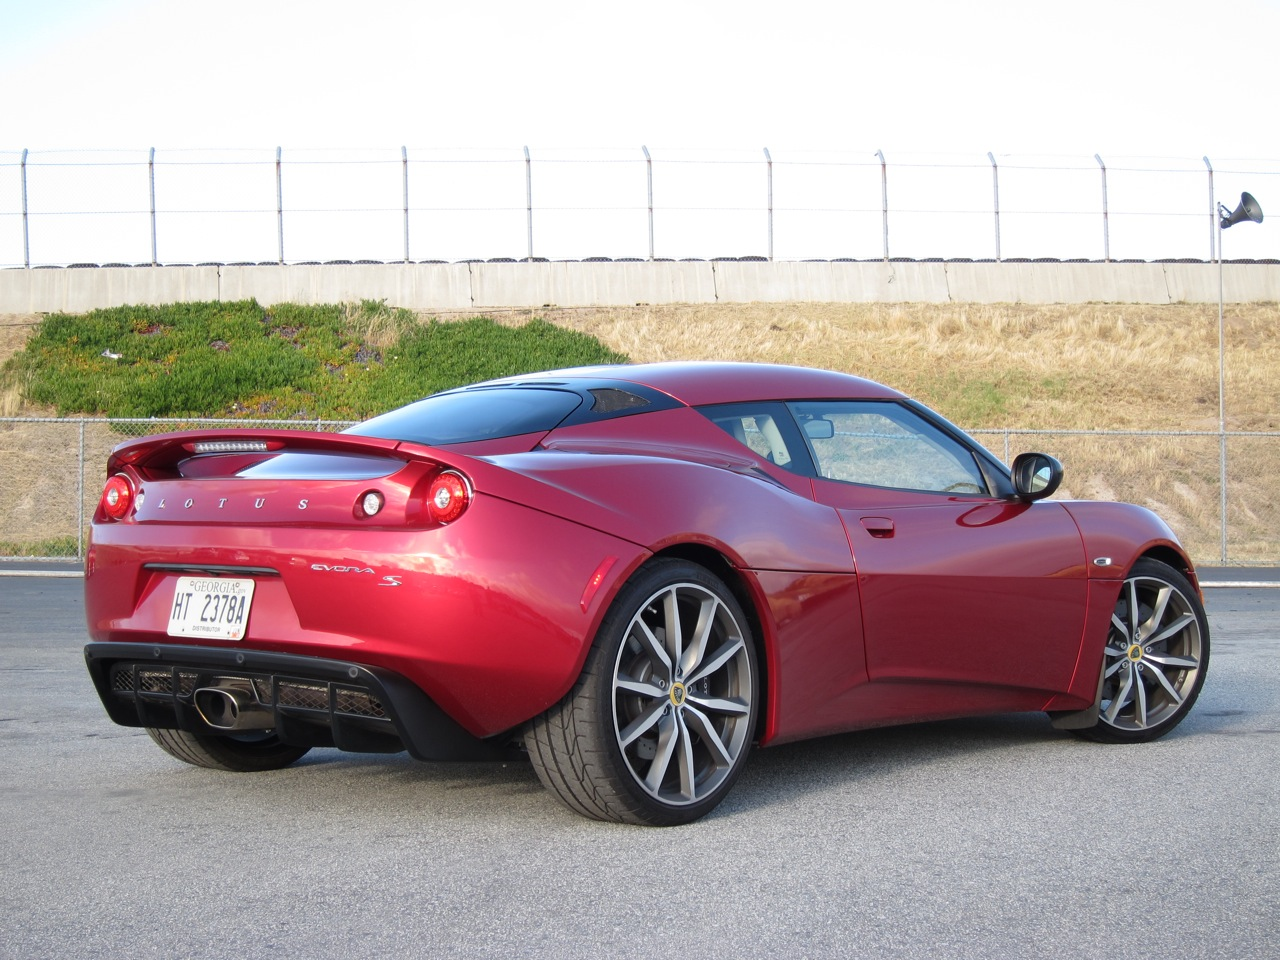 2014 Toyota Corolla Configurations >> 2011 Lotus Evora Reviews And Rating Motor Trend | Autos Post